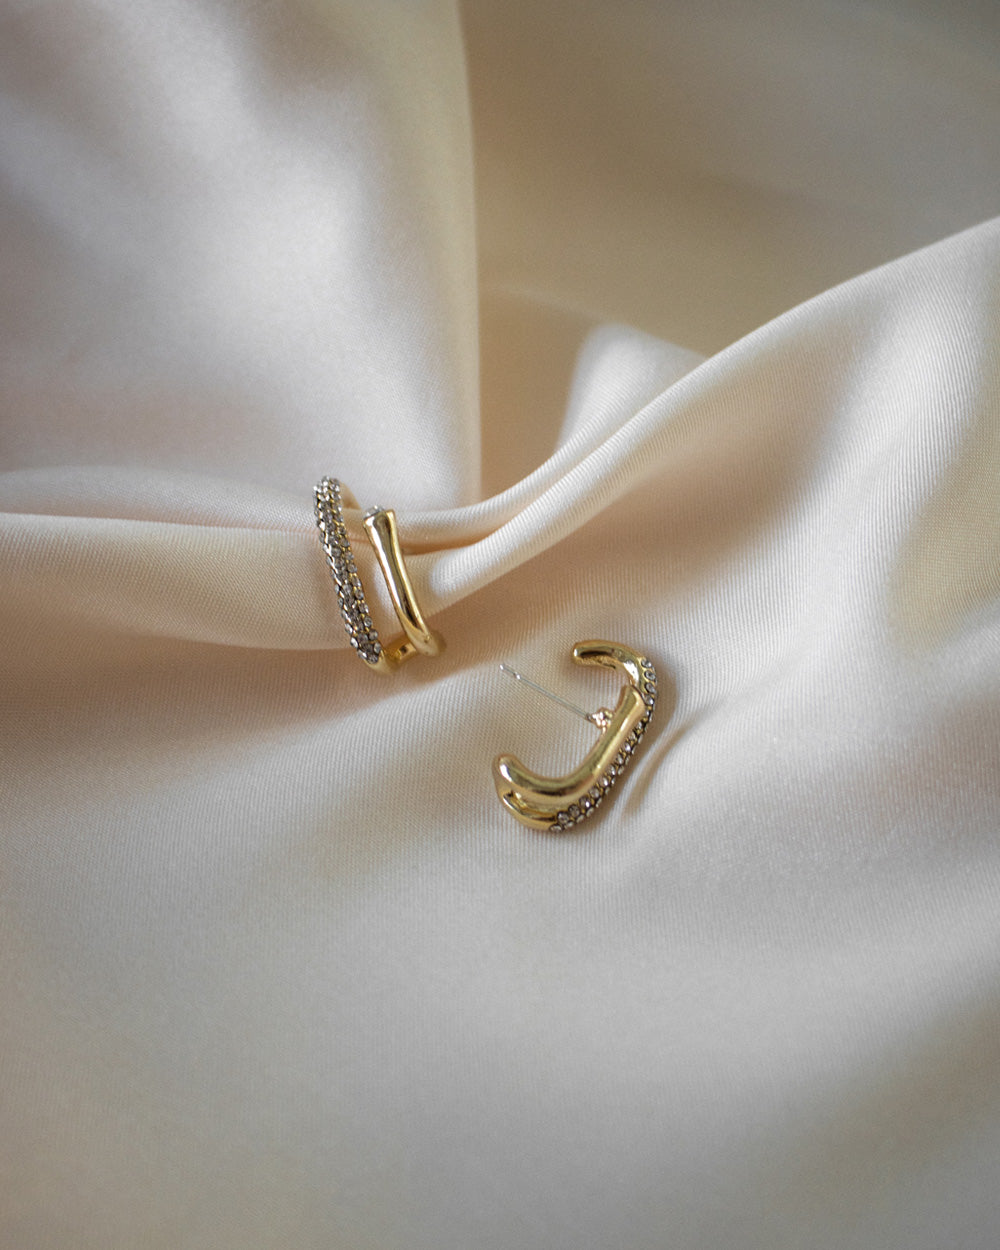 Duet Suspender Earrings in Gold by The Hexad